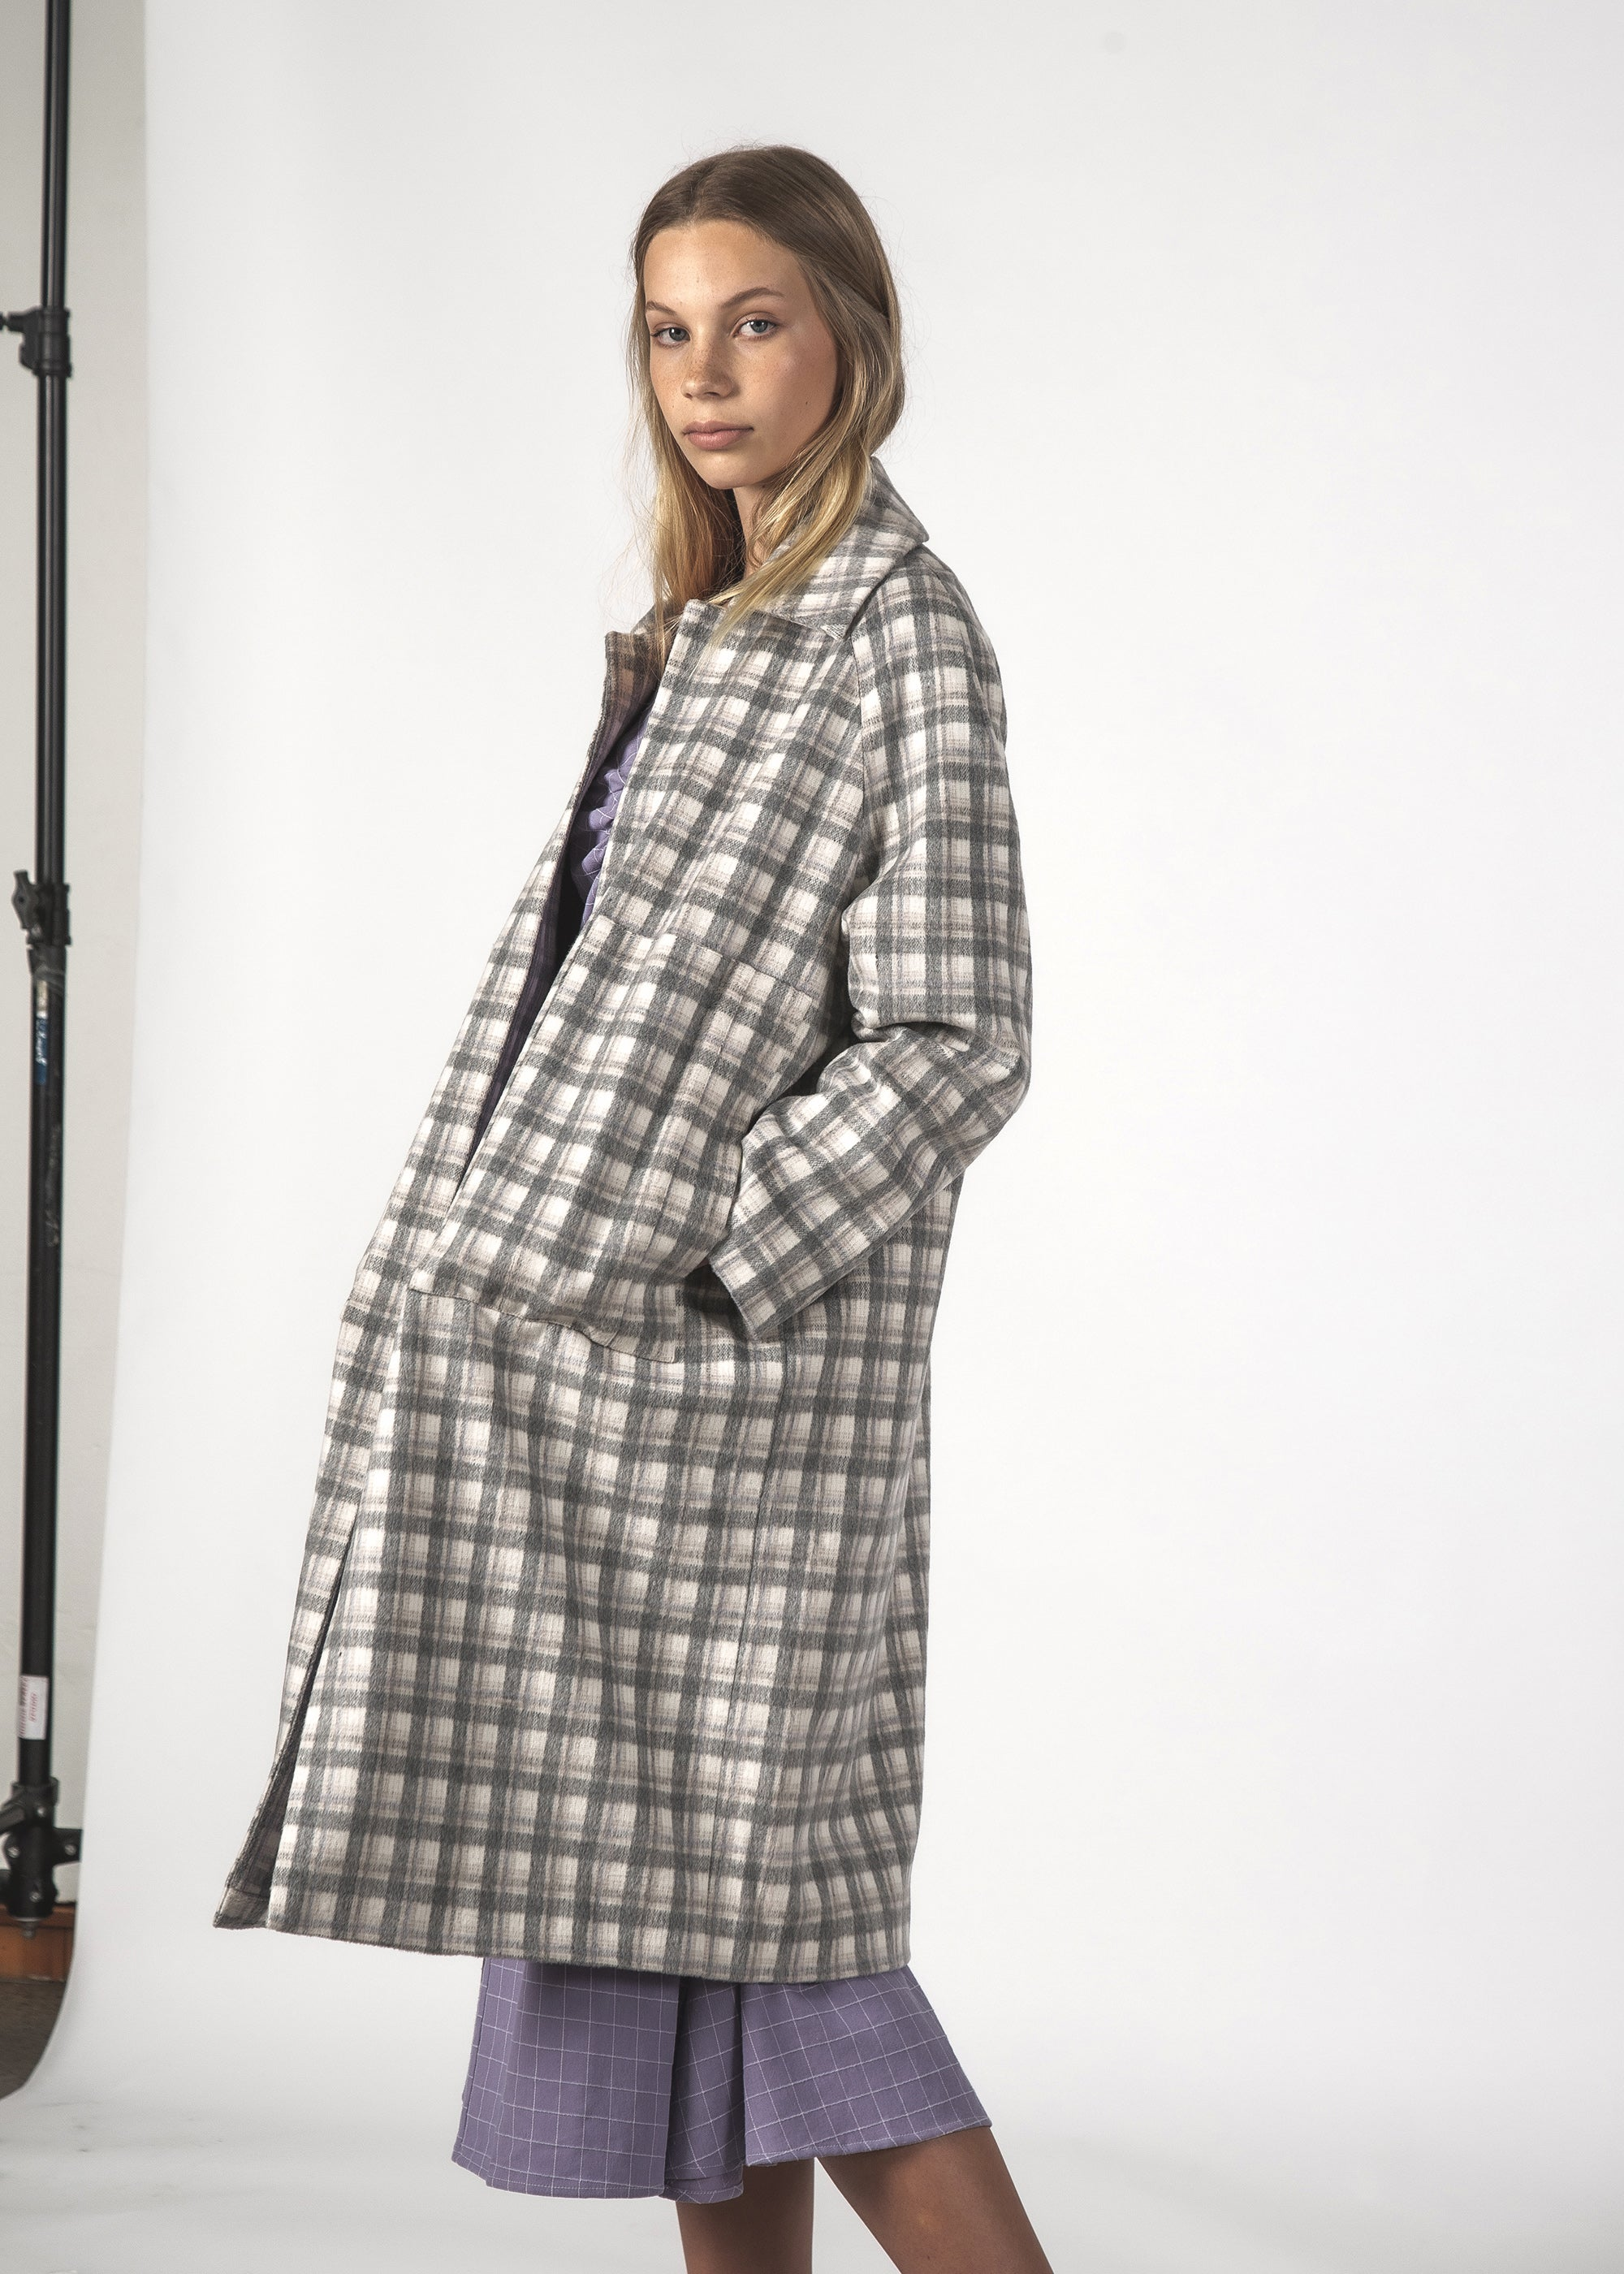 QUINN COAT - GREY CHECKS